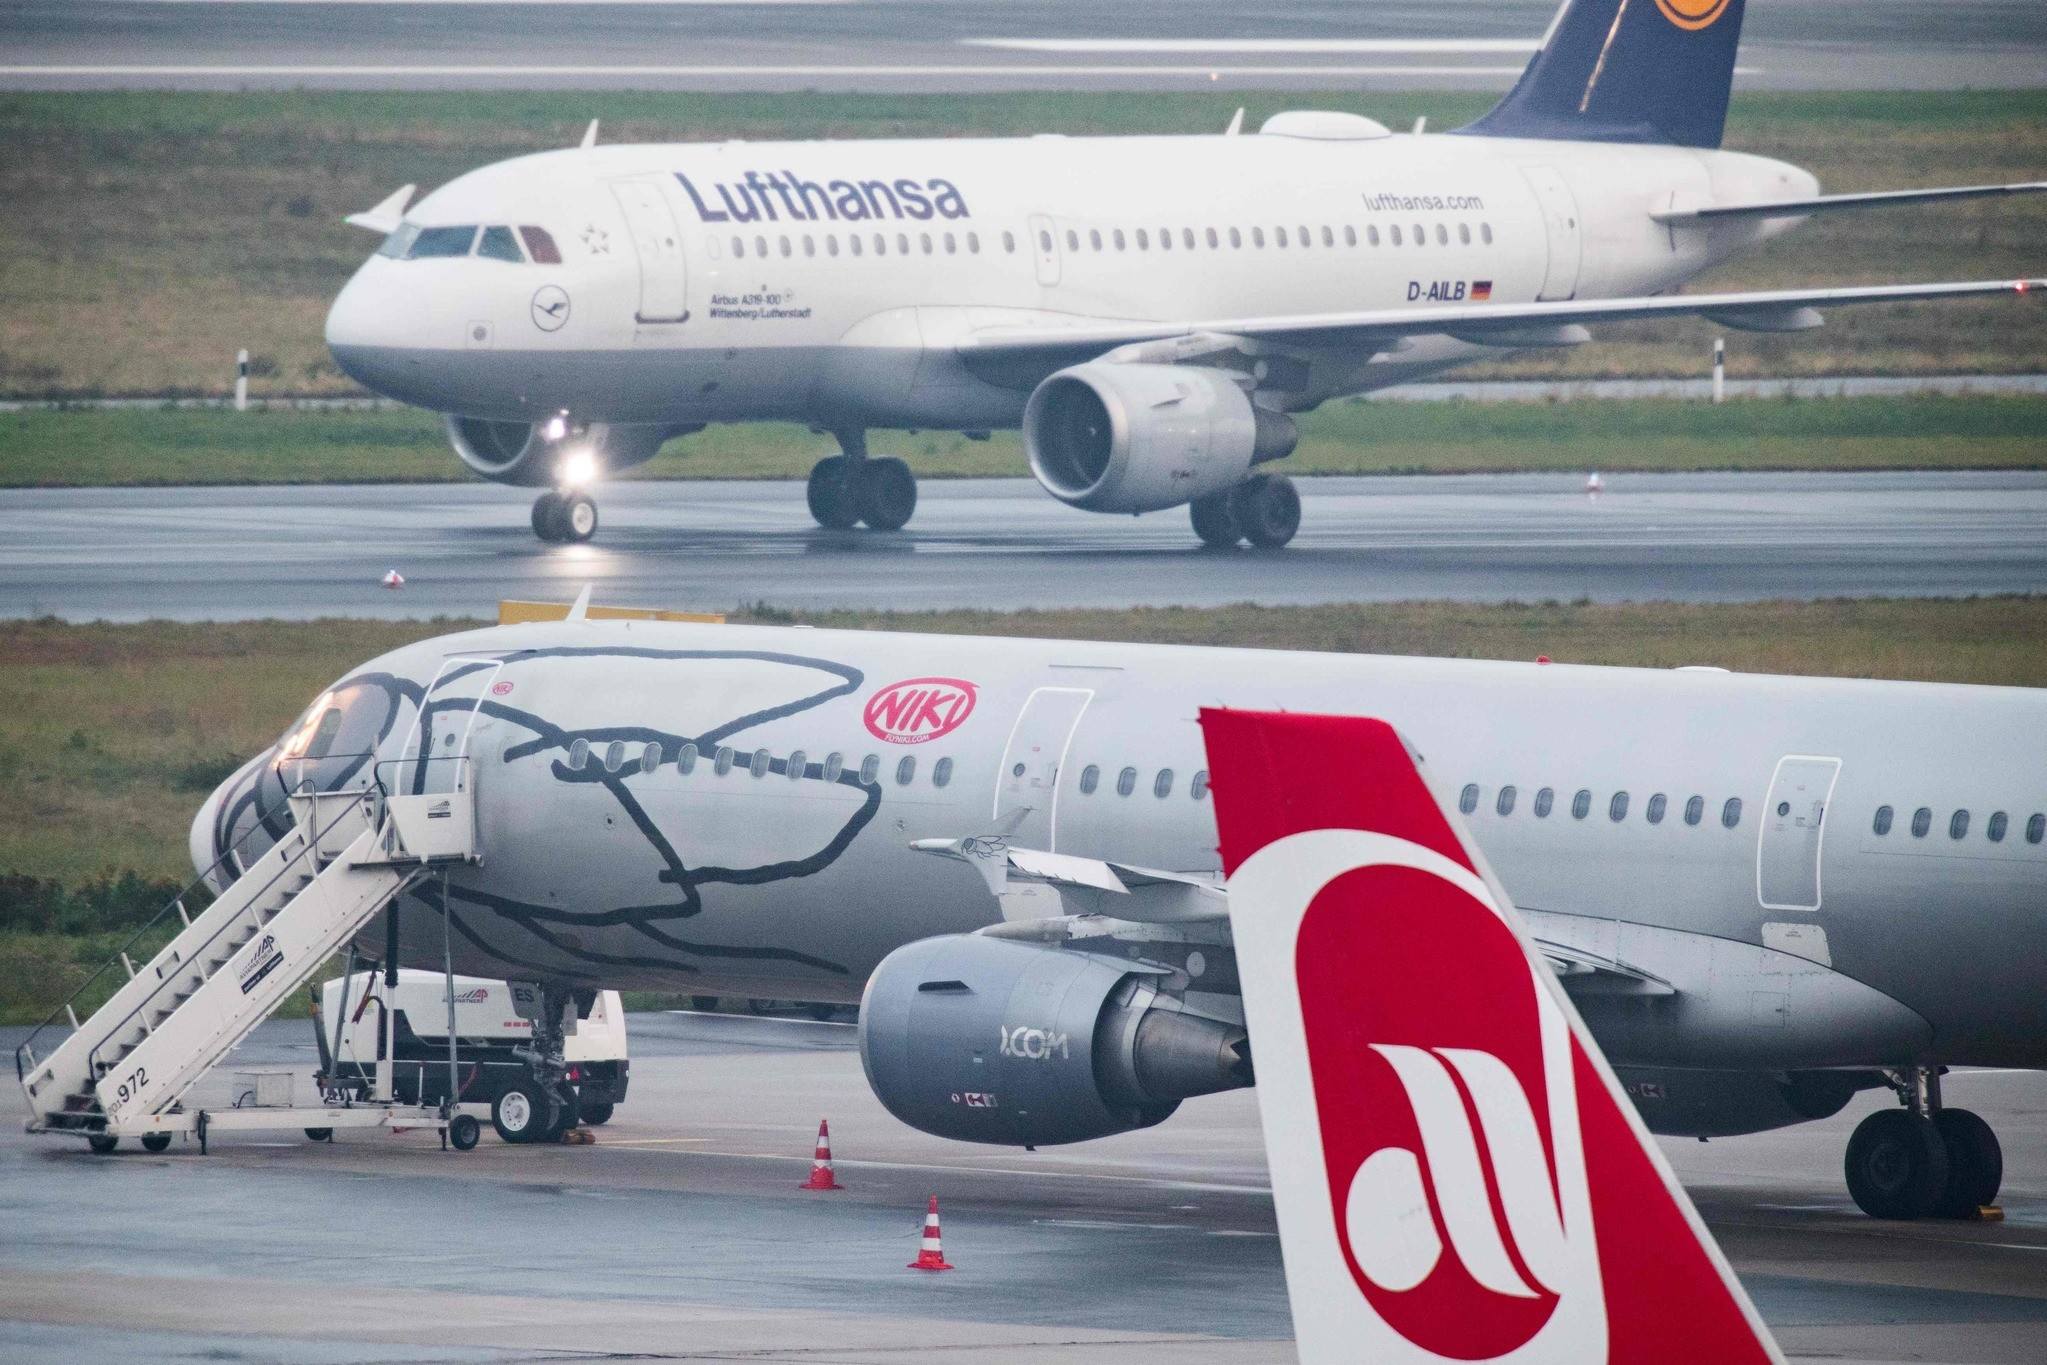 An airplane of German airline Lufthansa (background) rolls past planes of the airlines Niki (C) and Air Berlin (foreground) at the airport in Duesseldorf, western Germany, on December 1, 2017. (AFP Photo)